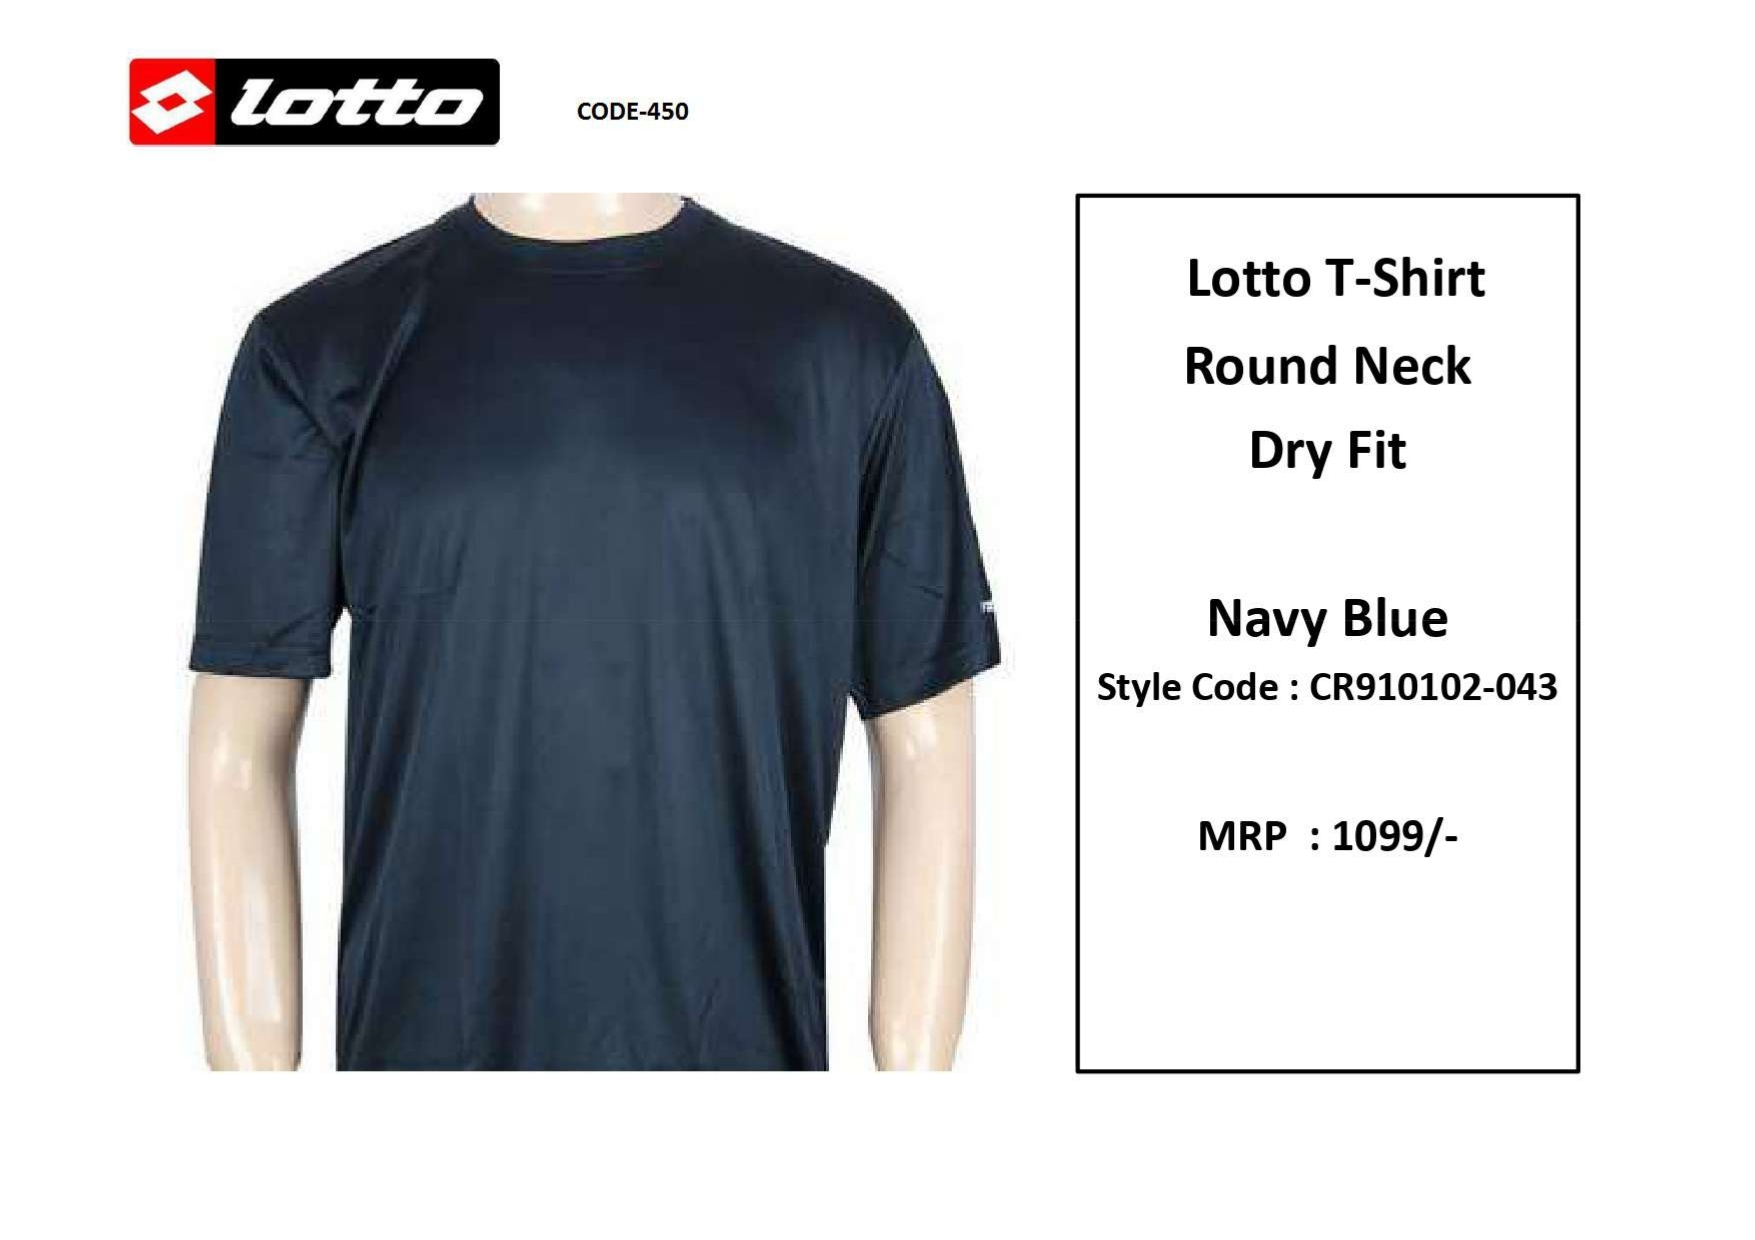 Lotto Polo T-shirt